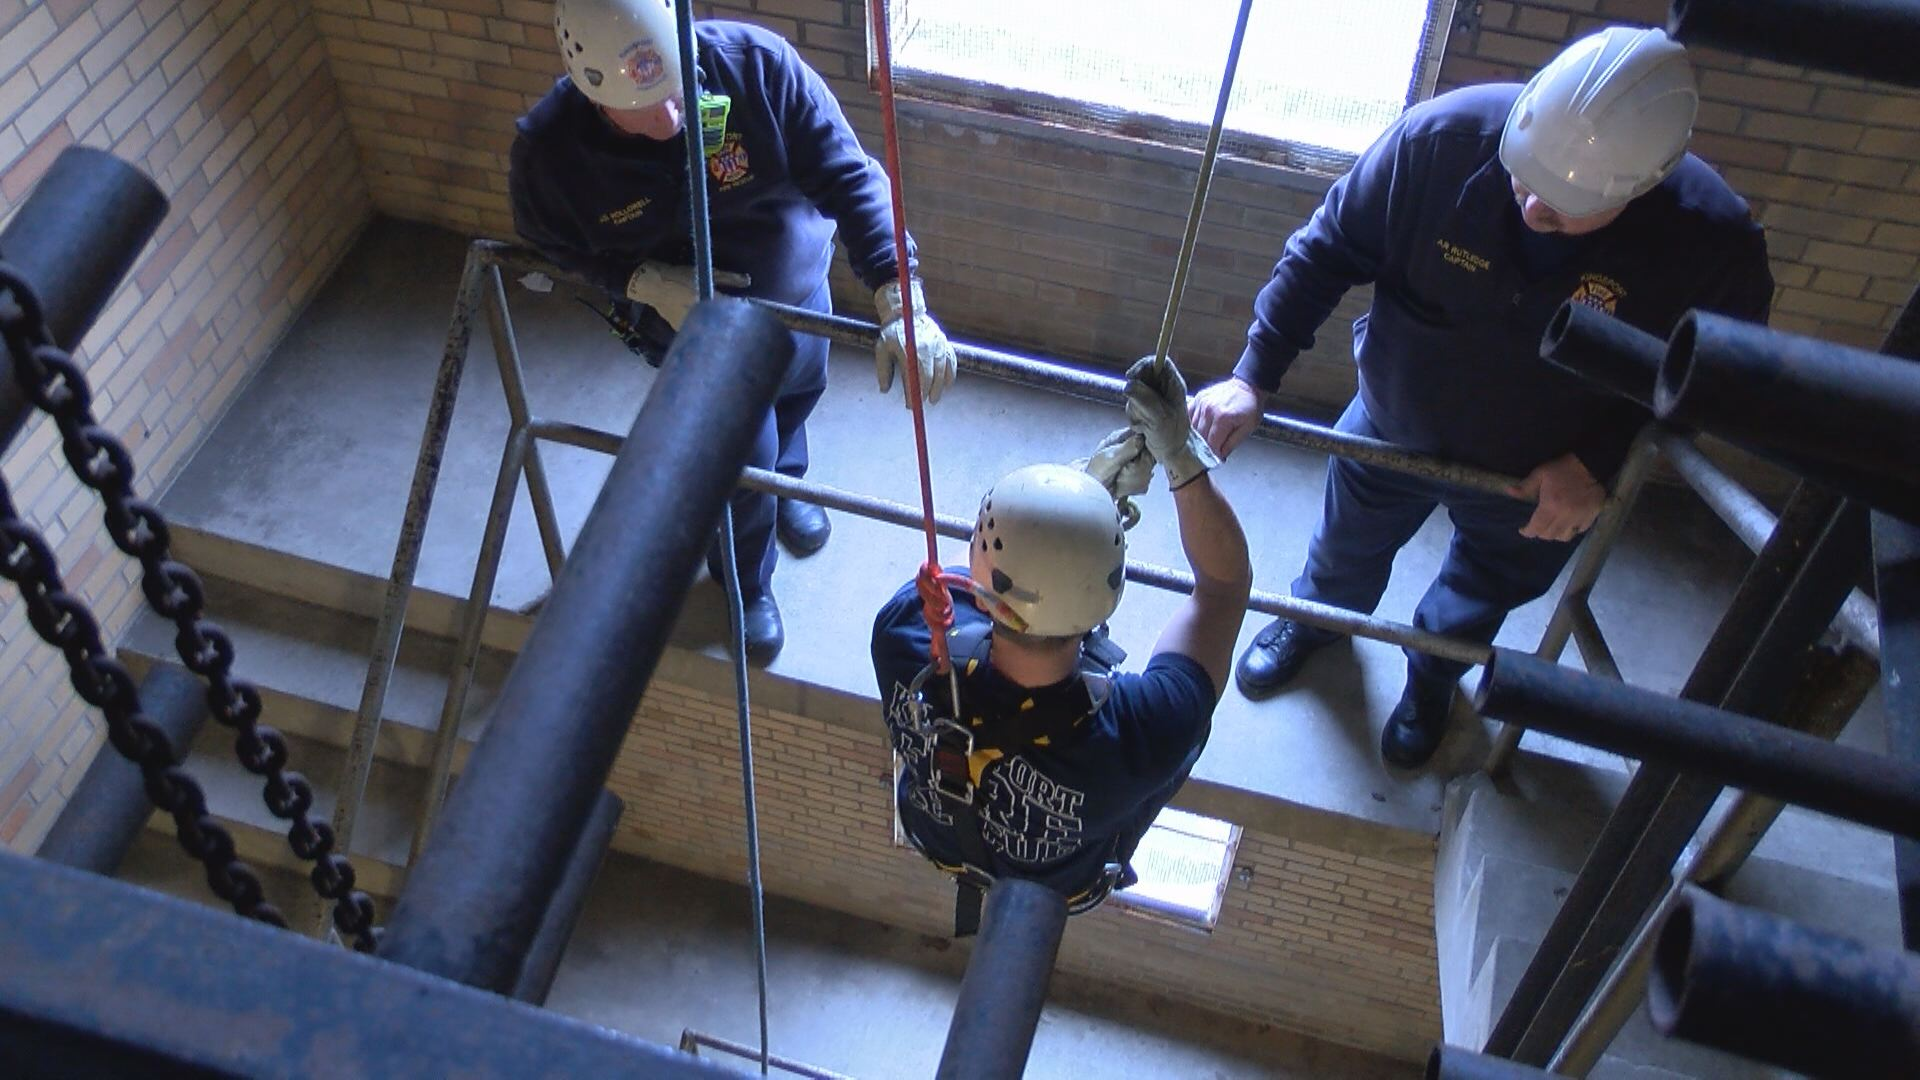 Rookie Zach Helvey gets lowered on the ropes for the first time. Helvey said he hopes someday to join the technical rescue team. (Thomas Gray/WCYB)